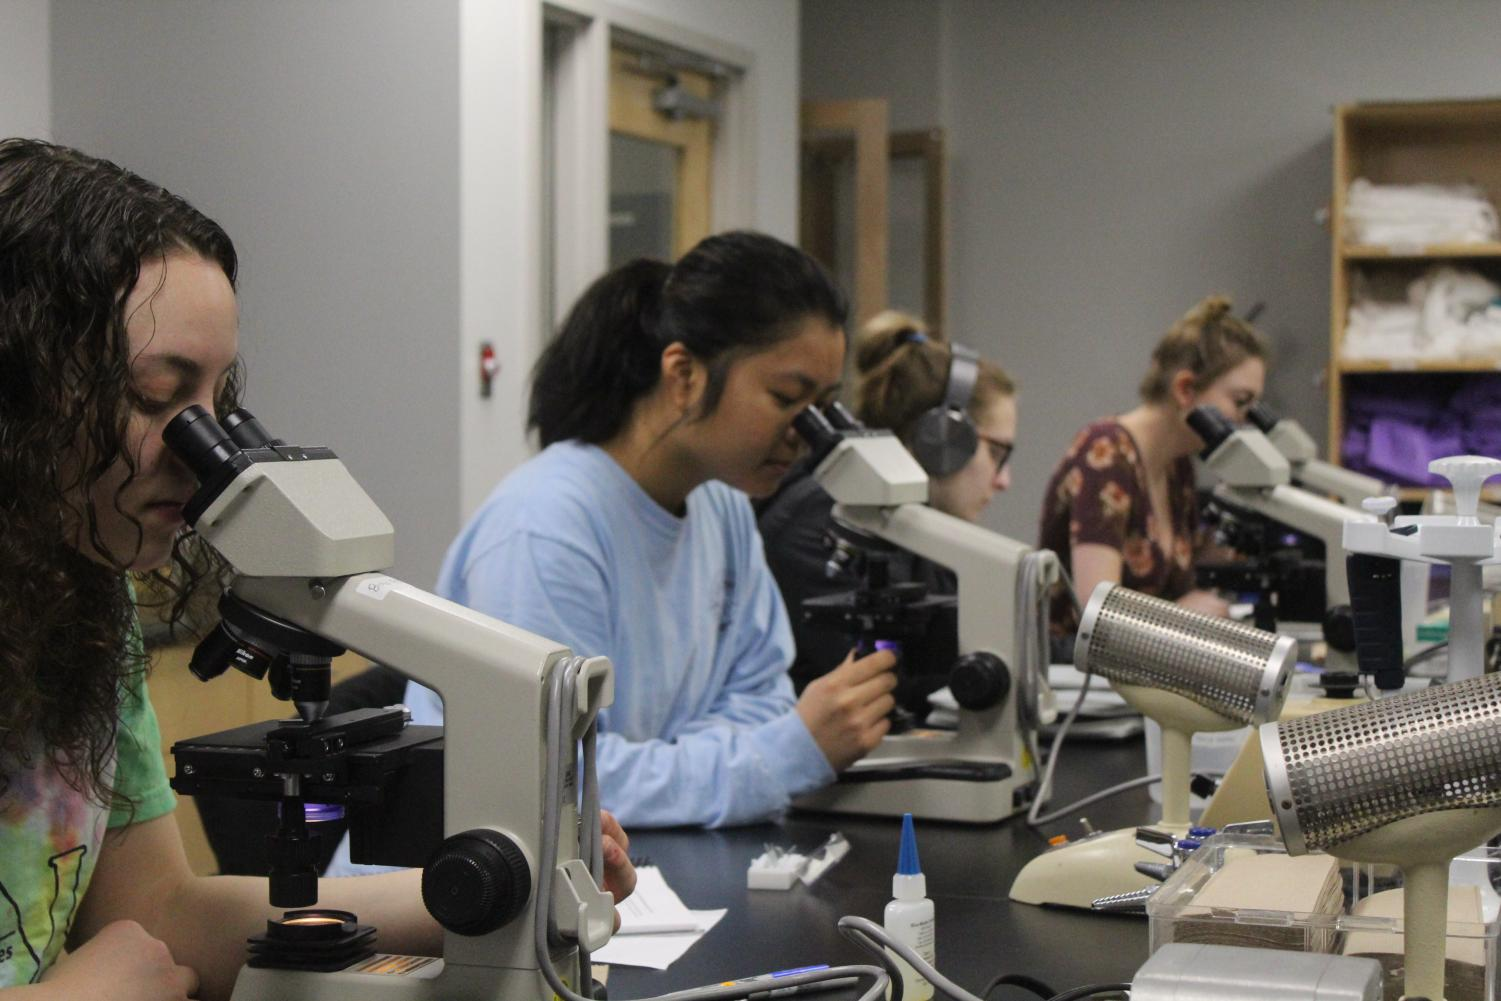 Emily Fuller ('19), Linh Luong ('20),  Jenna Reimann ('20), and Cosette Schneider ('20) work with microscopes.